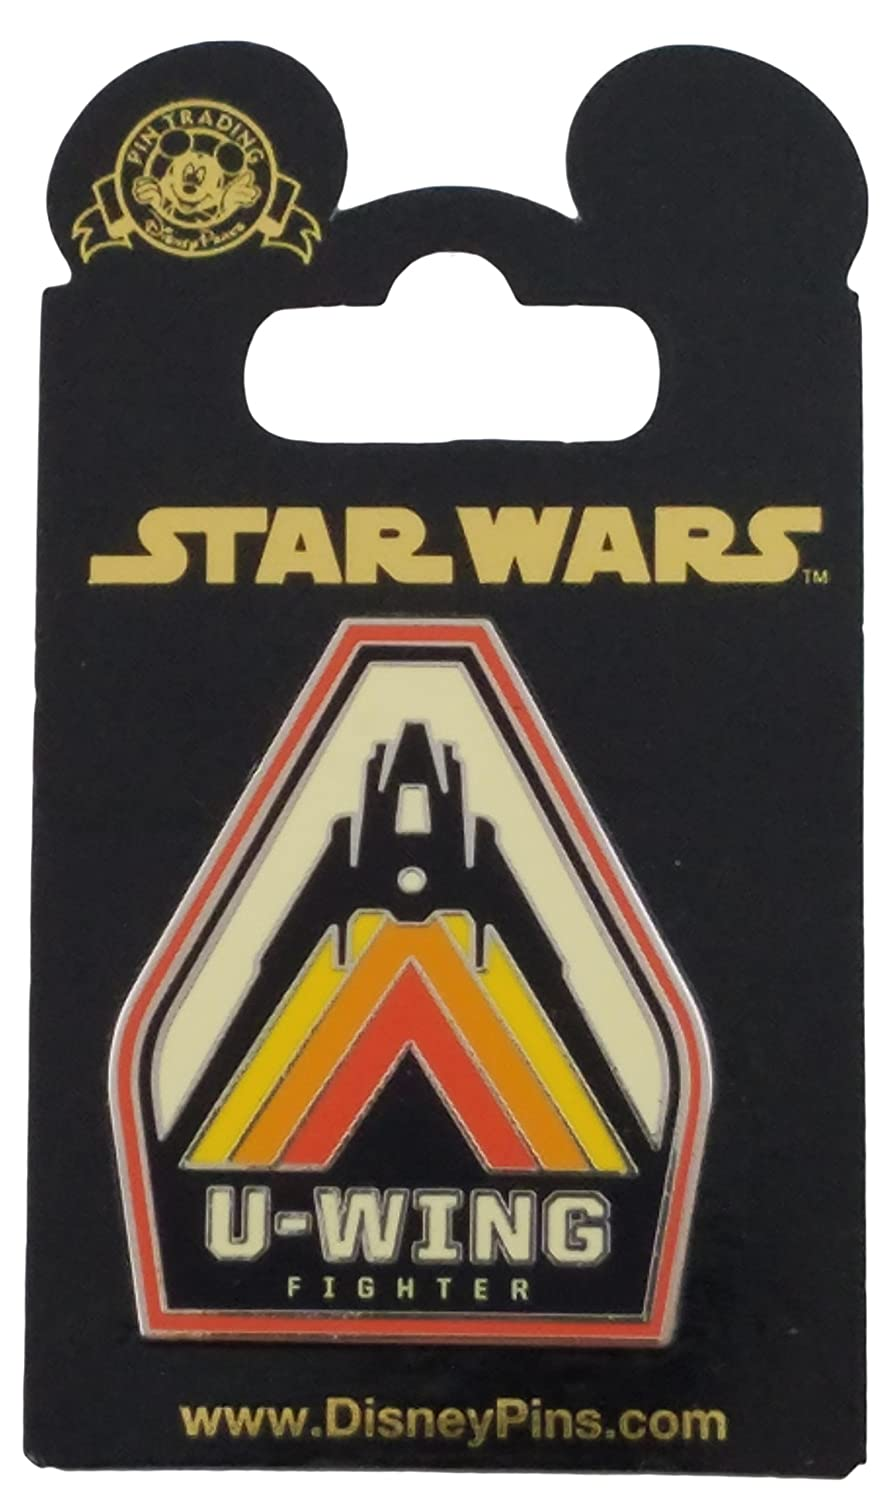 Disney Pin - Star Wars: Rogue One - U-Wing Fighter